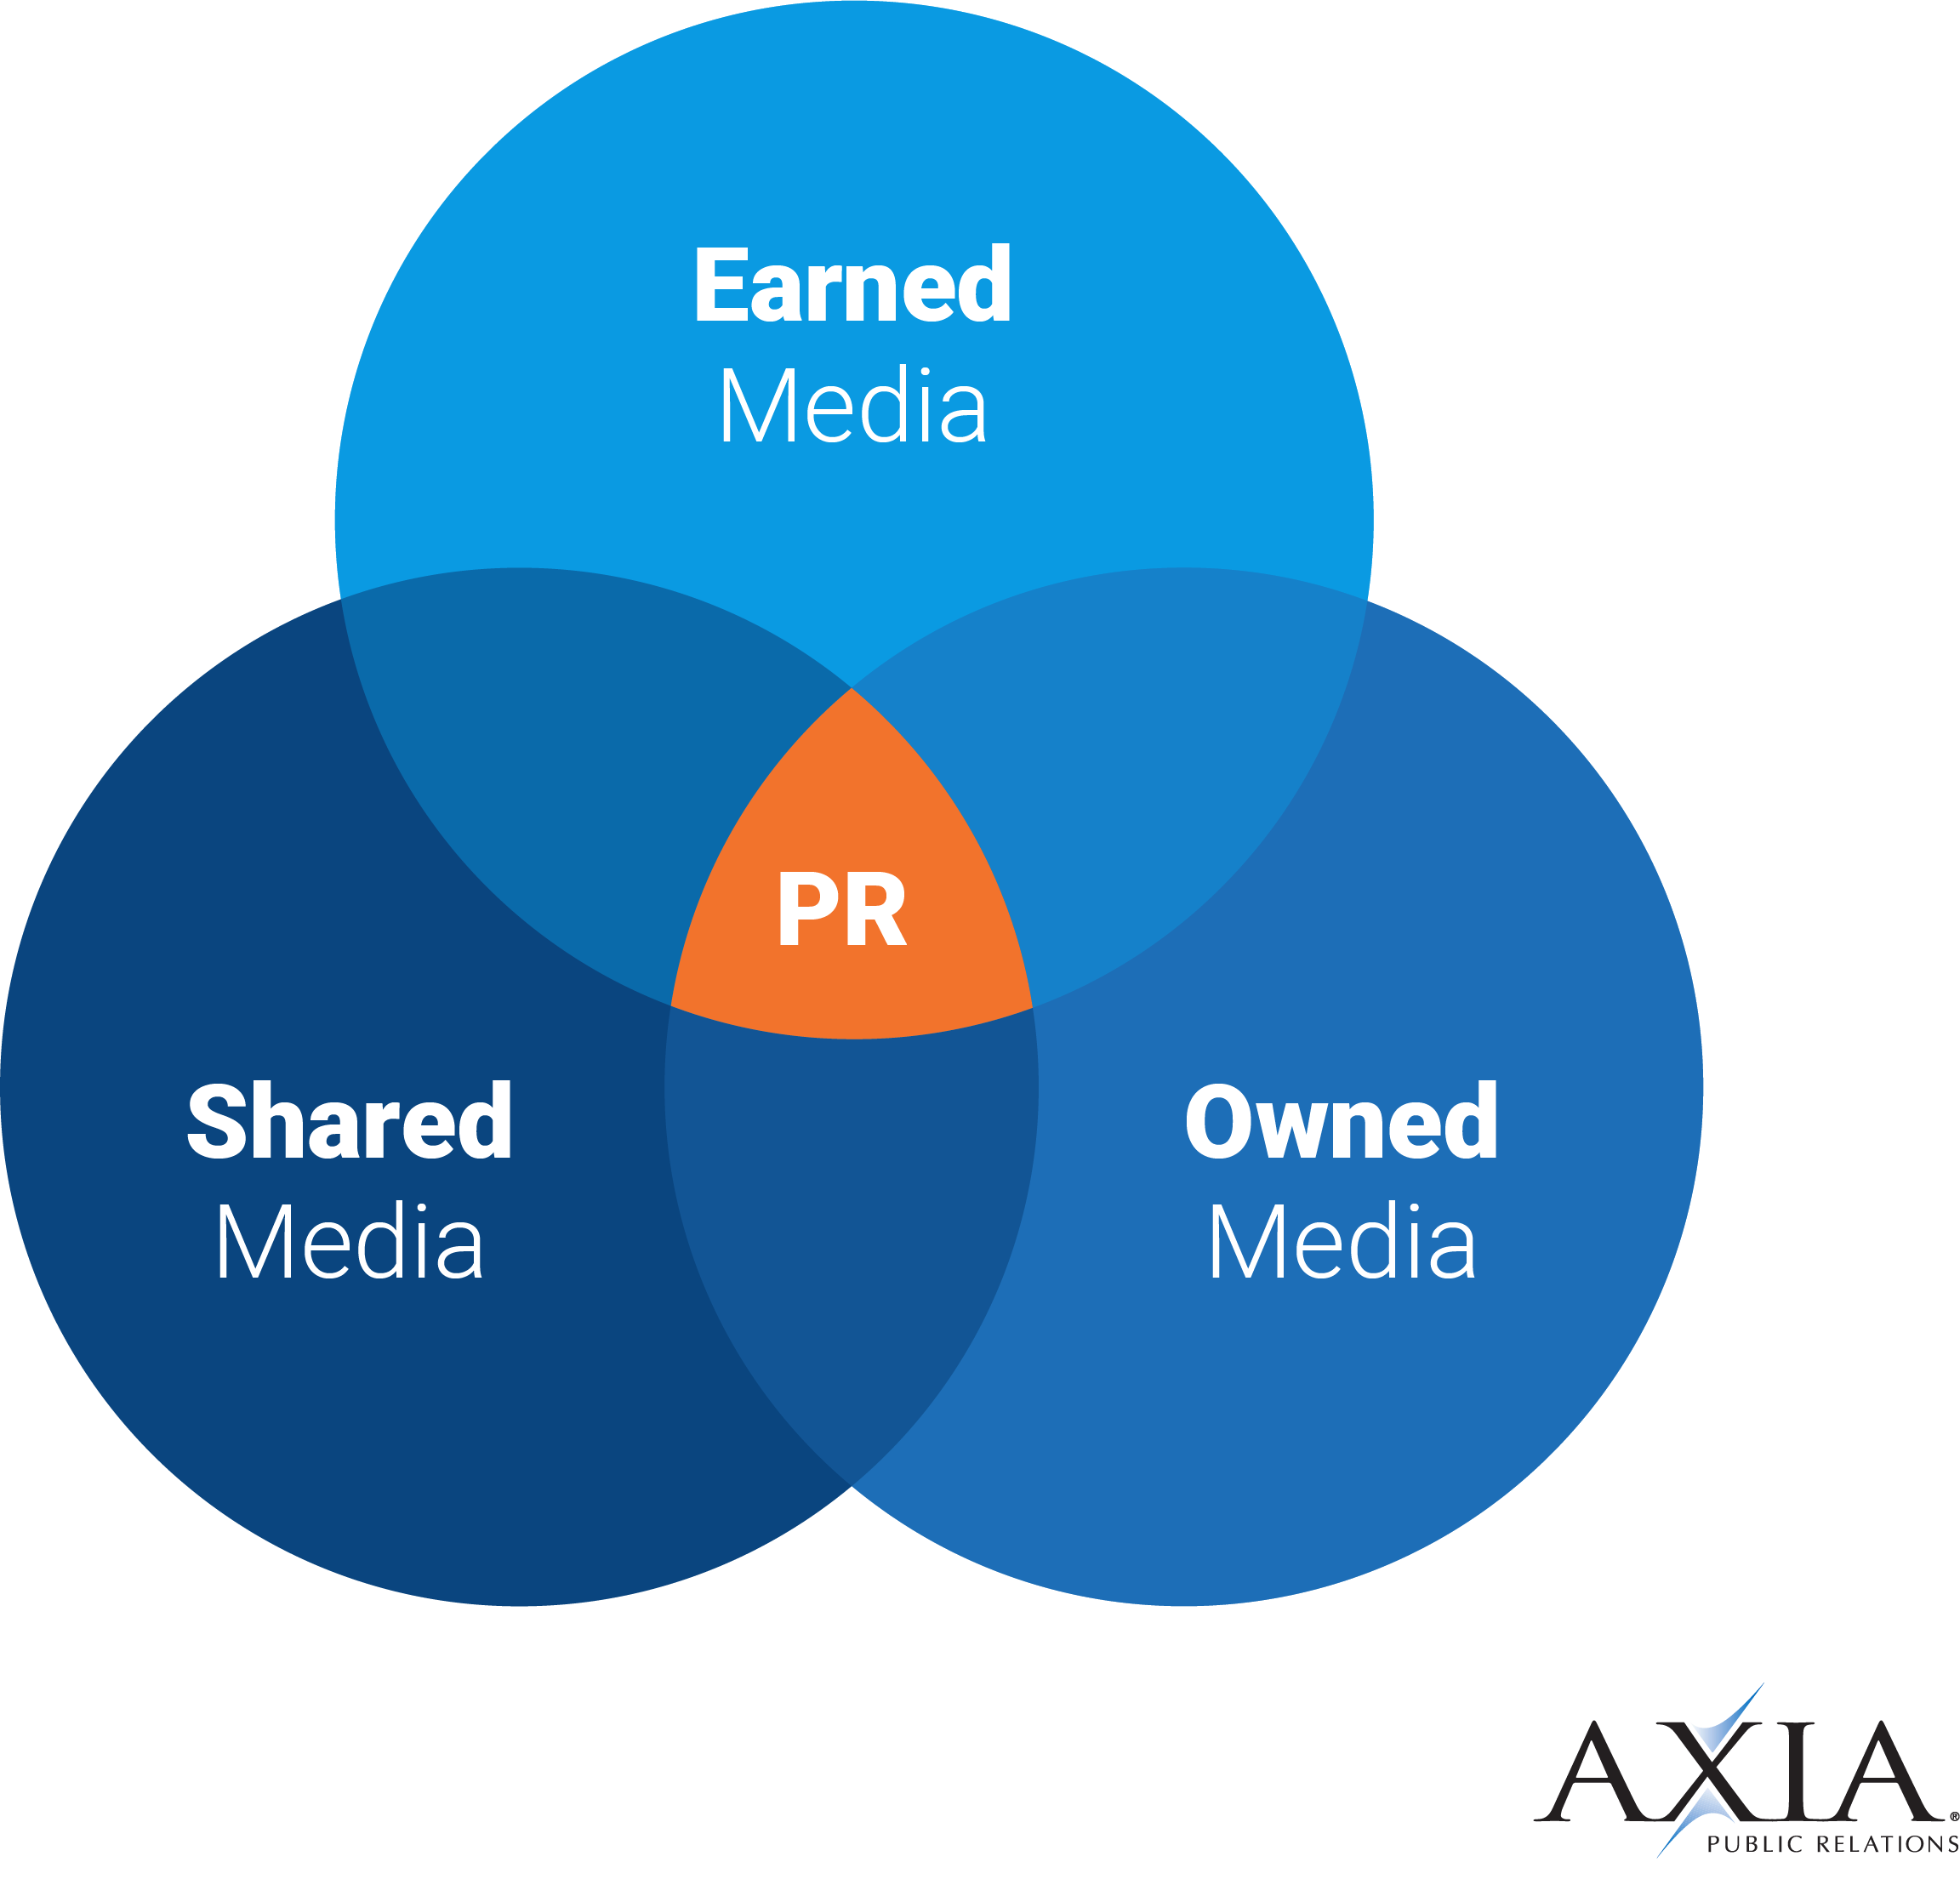 Public relations is made of three overlapping elements: earned media, shared media, and owned media.